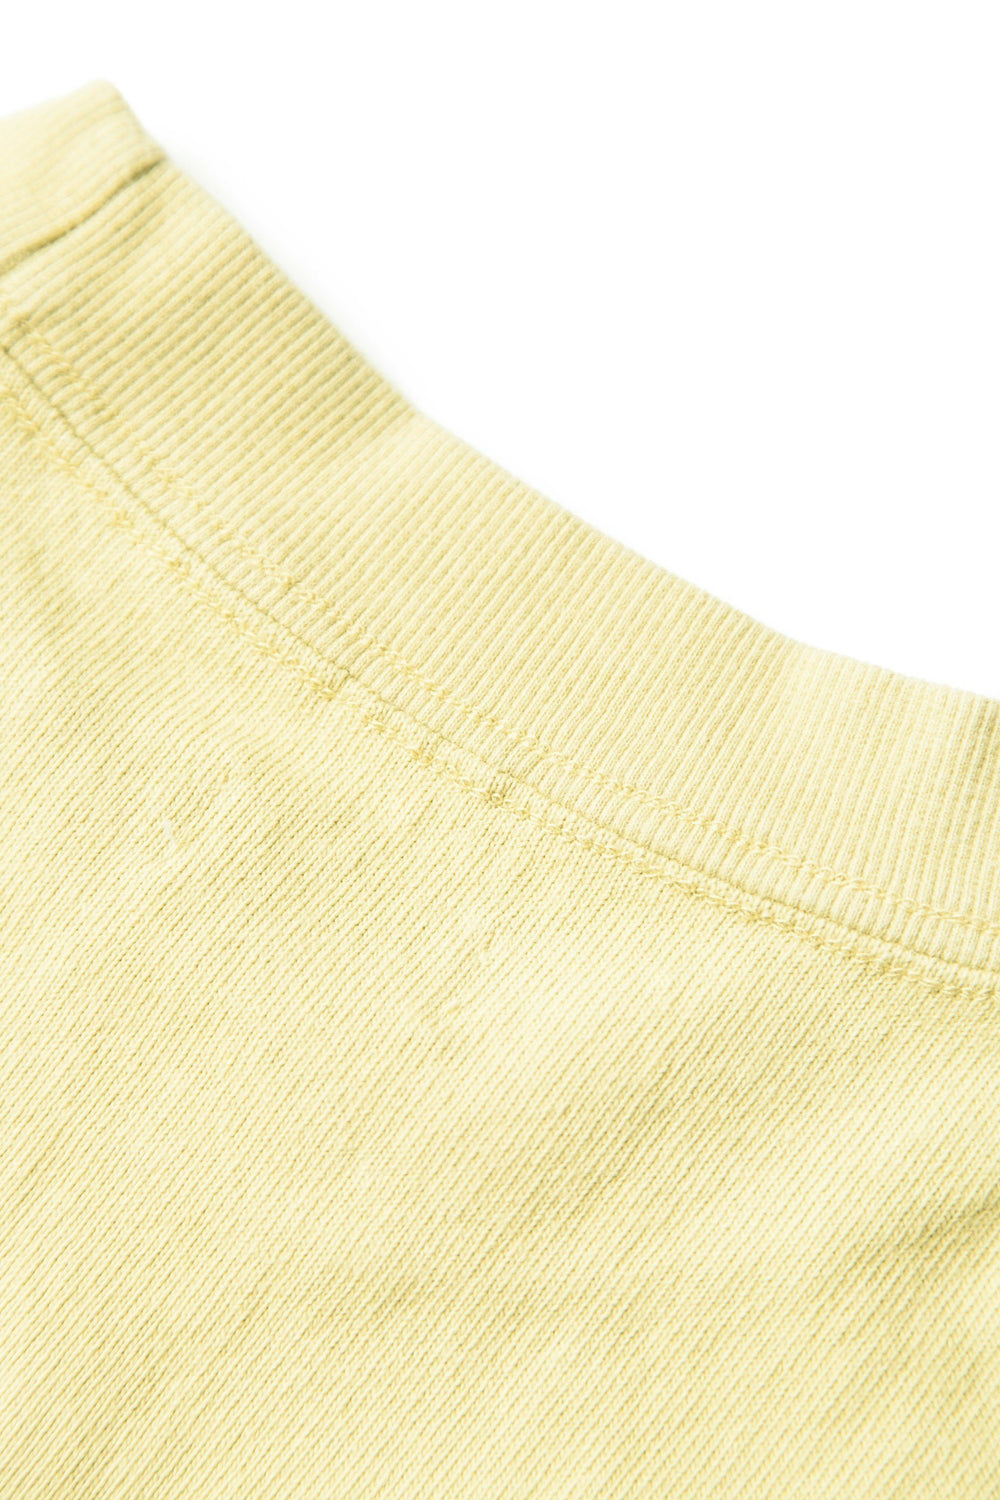 HEAVYWEIGHT OVERSIZED TEE LEMONGRASS